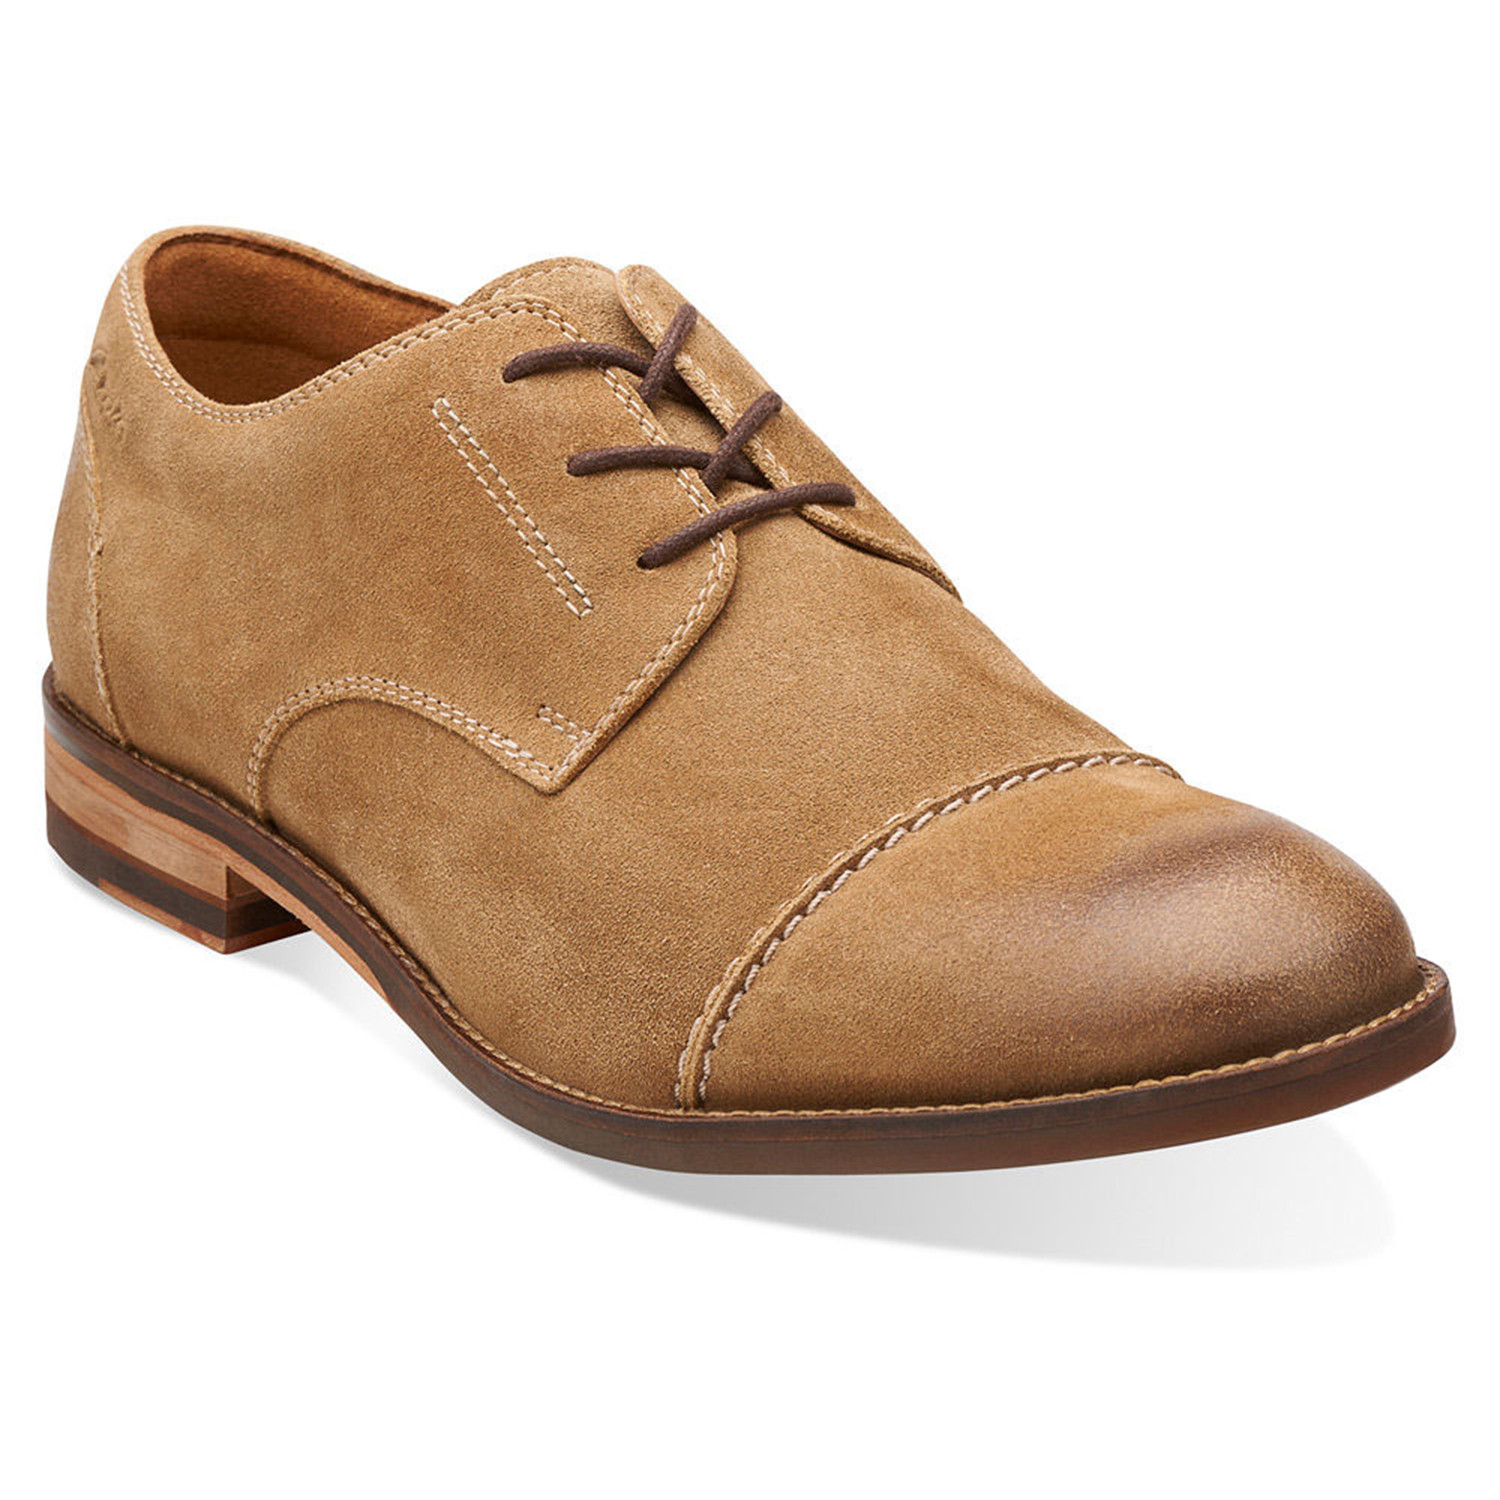 Exton Cap Oxford // Taupe Suede (US: 7)